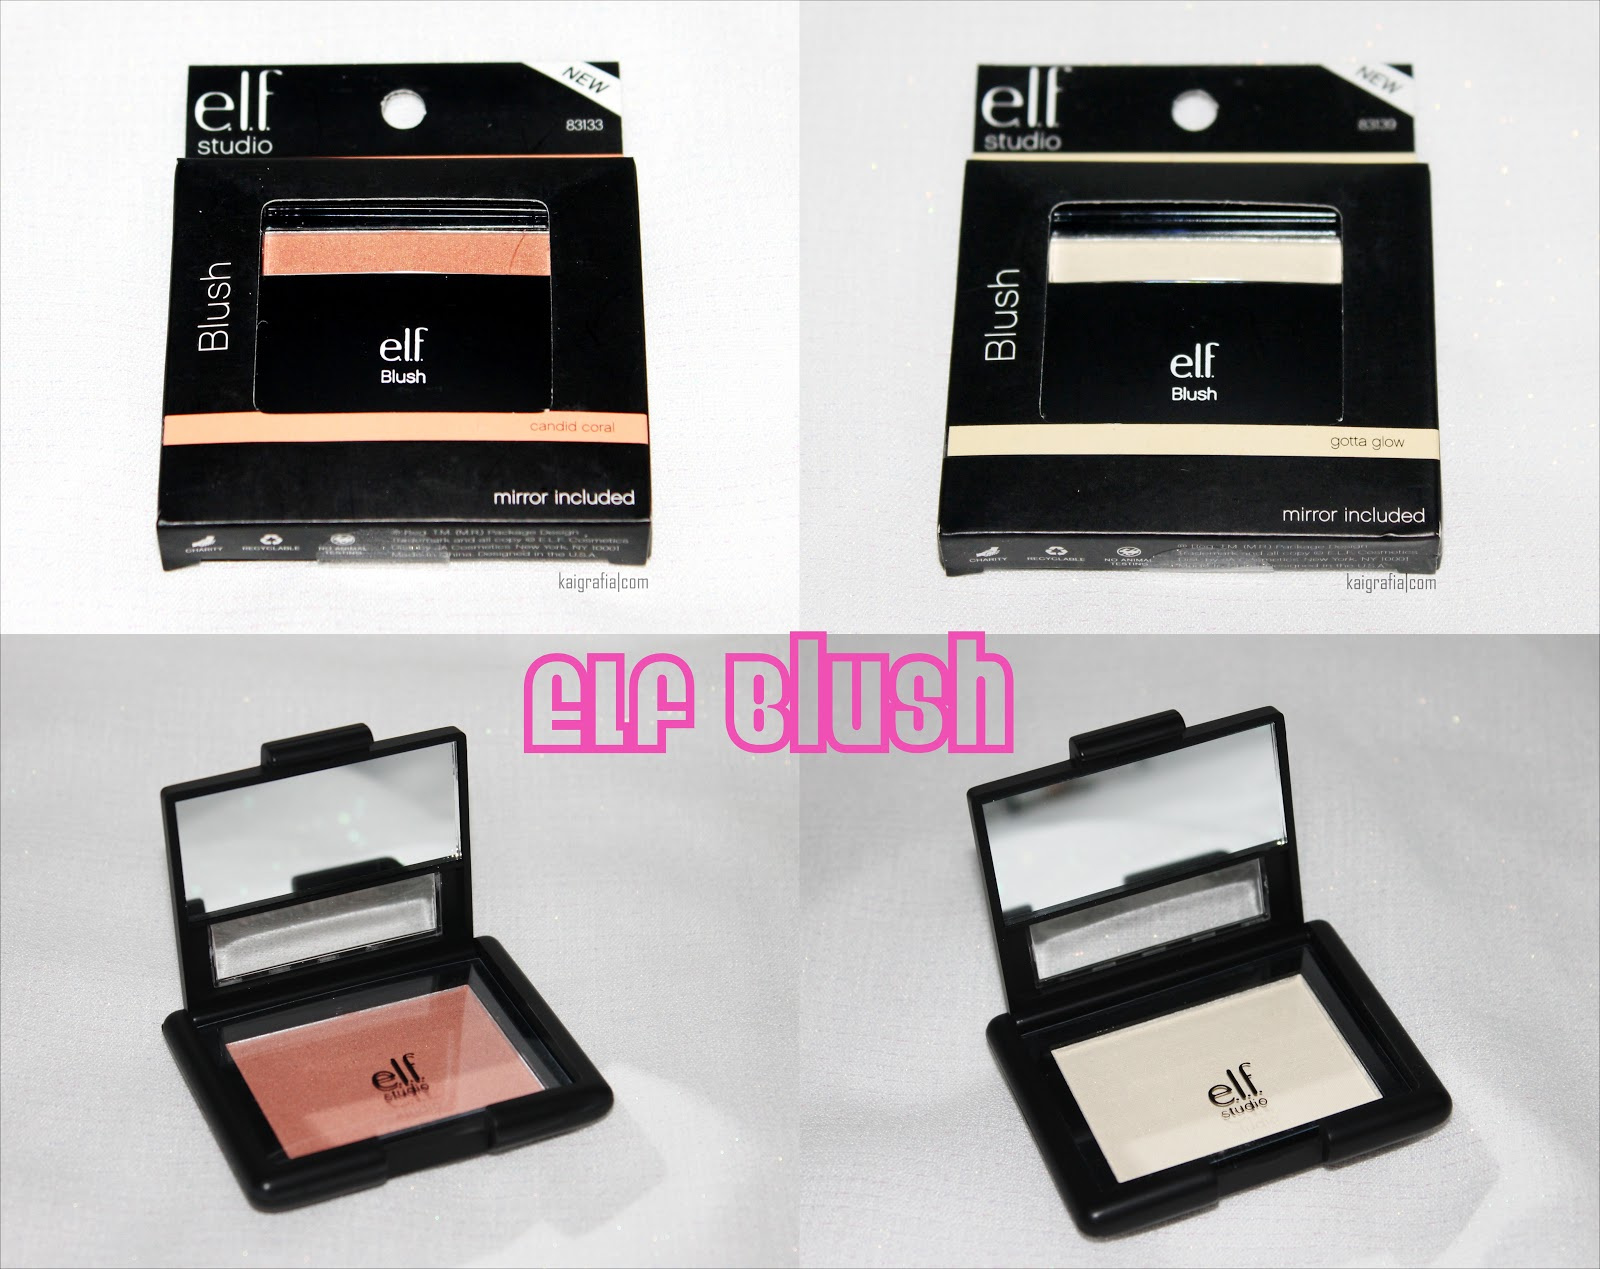 Affordable blush on